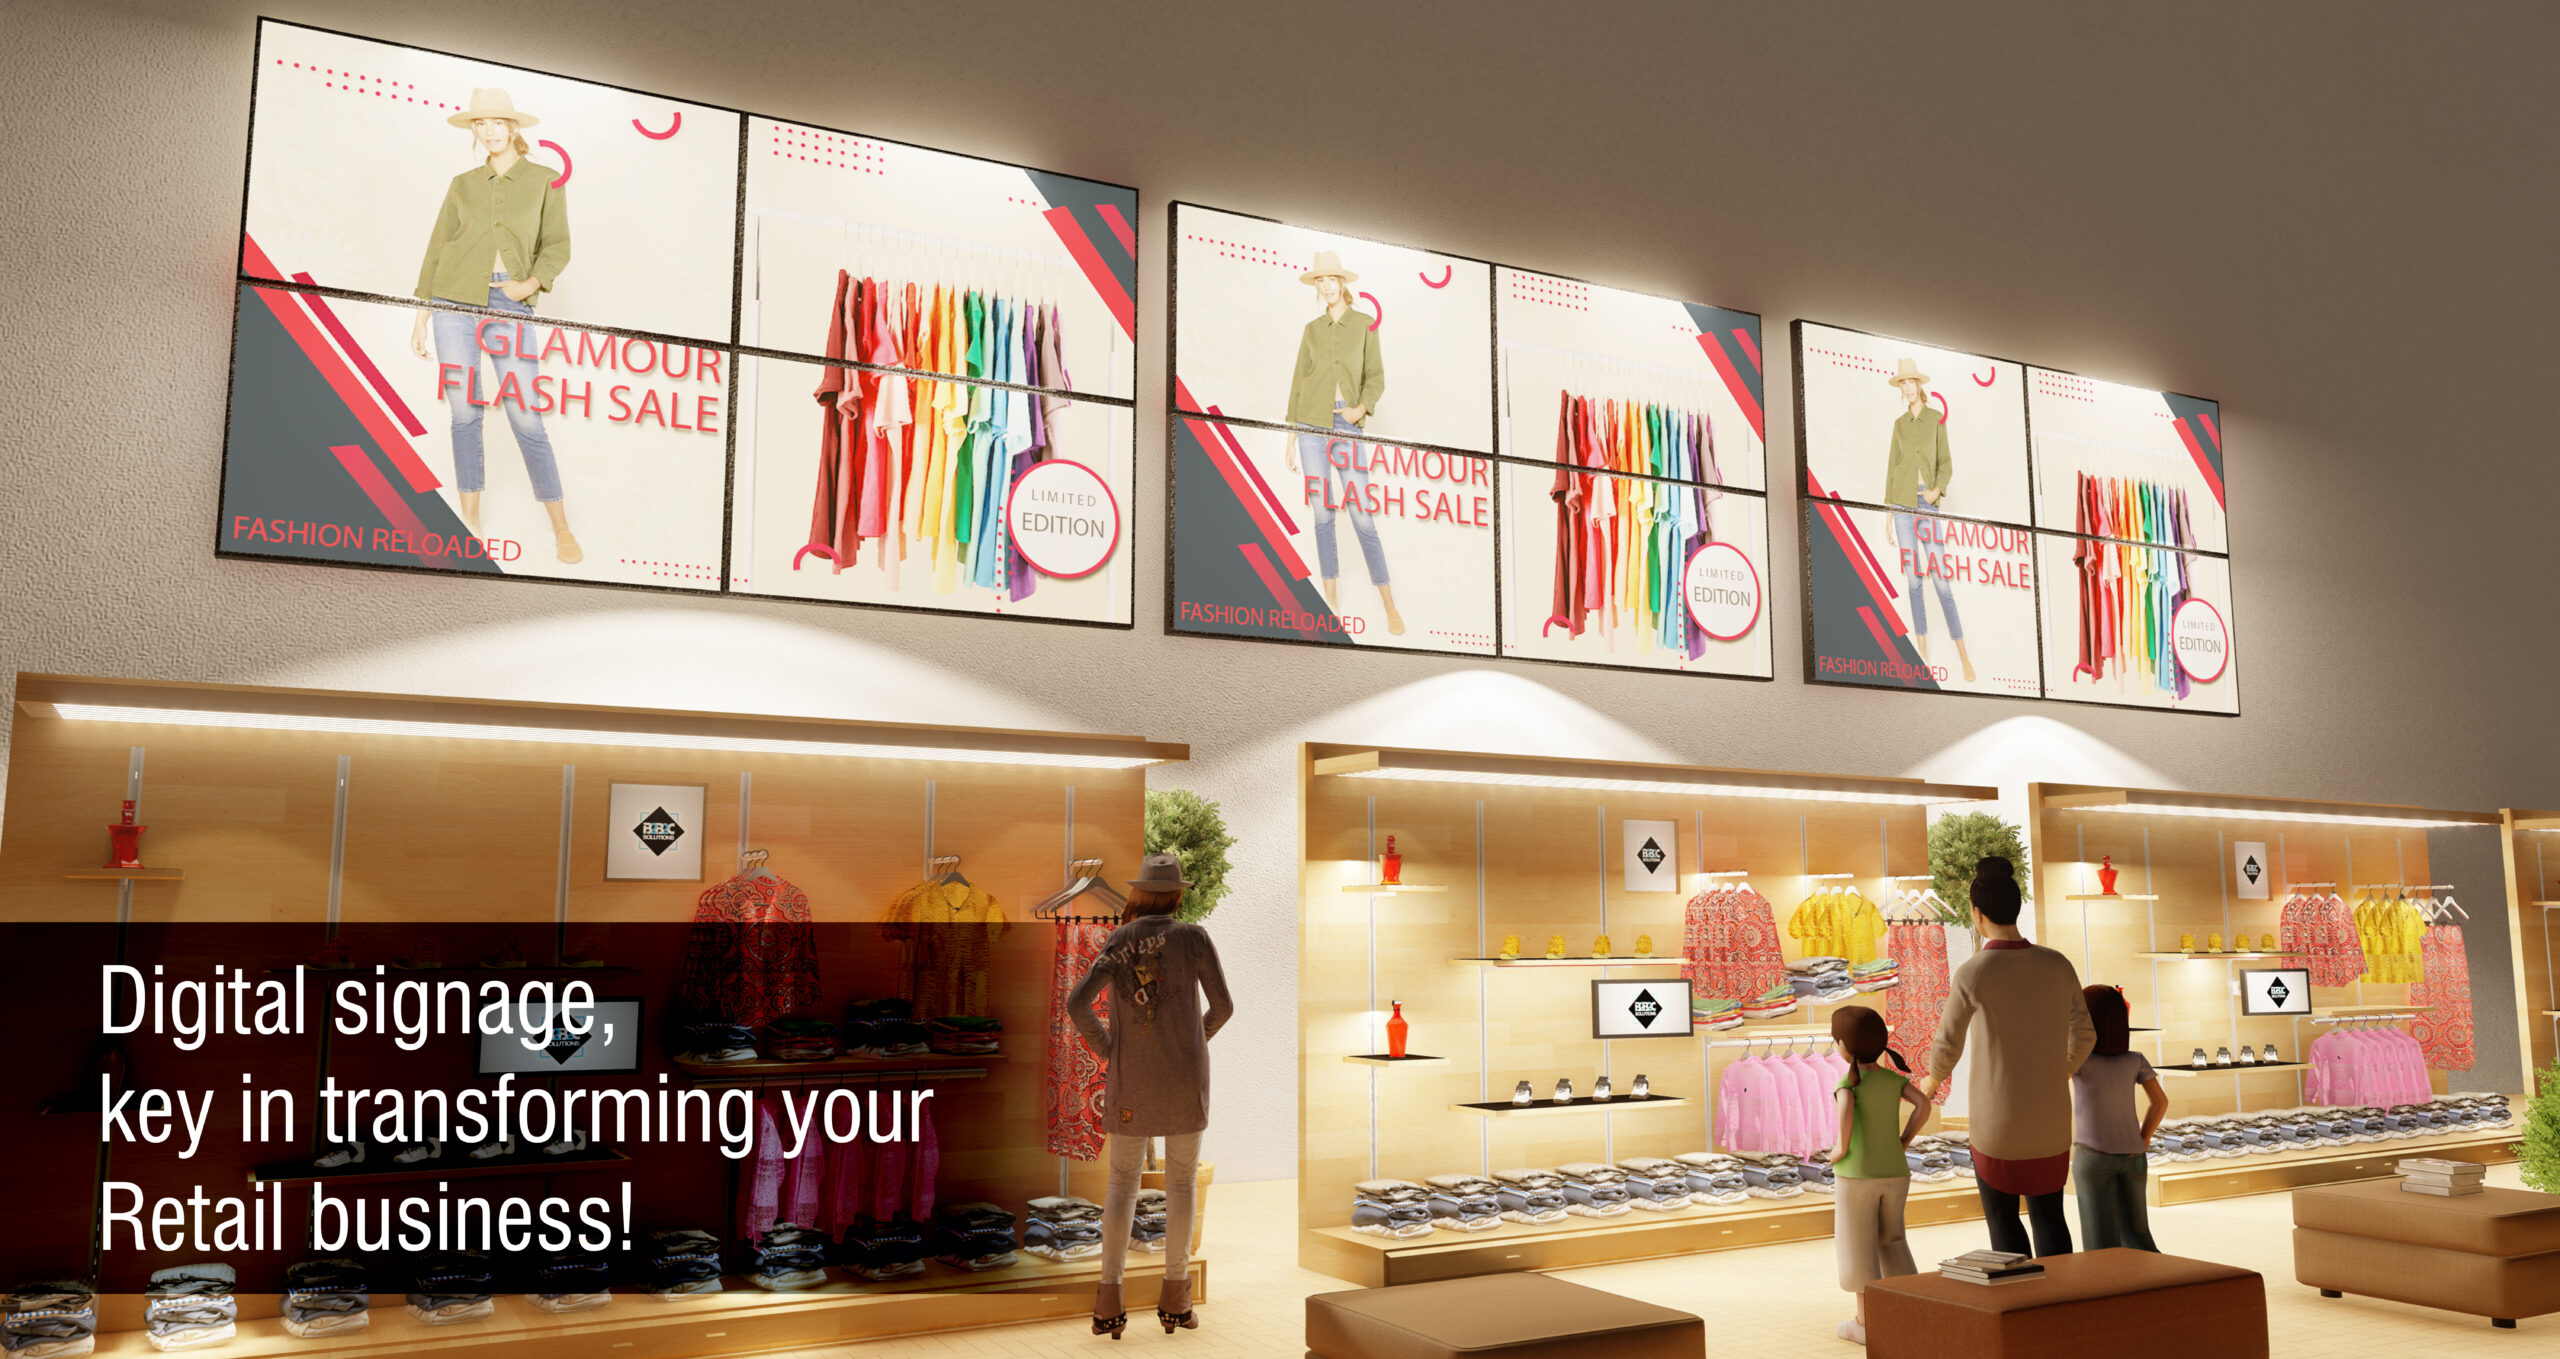 Digital signage, key in transforming your retail business